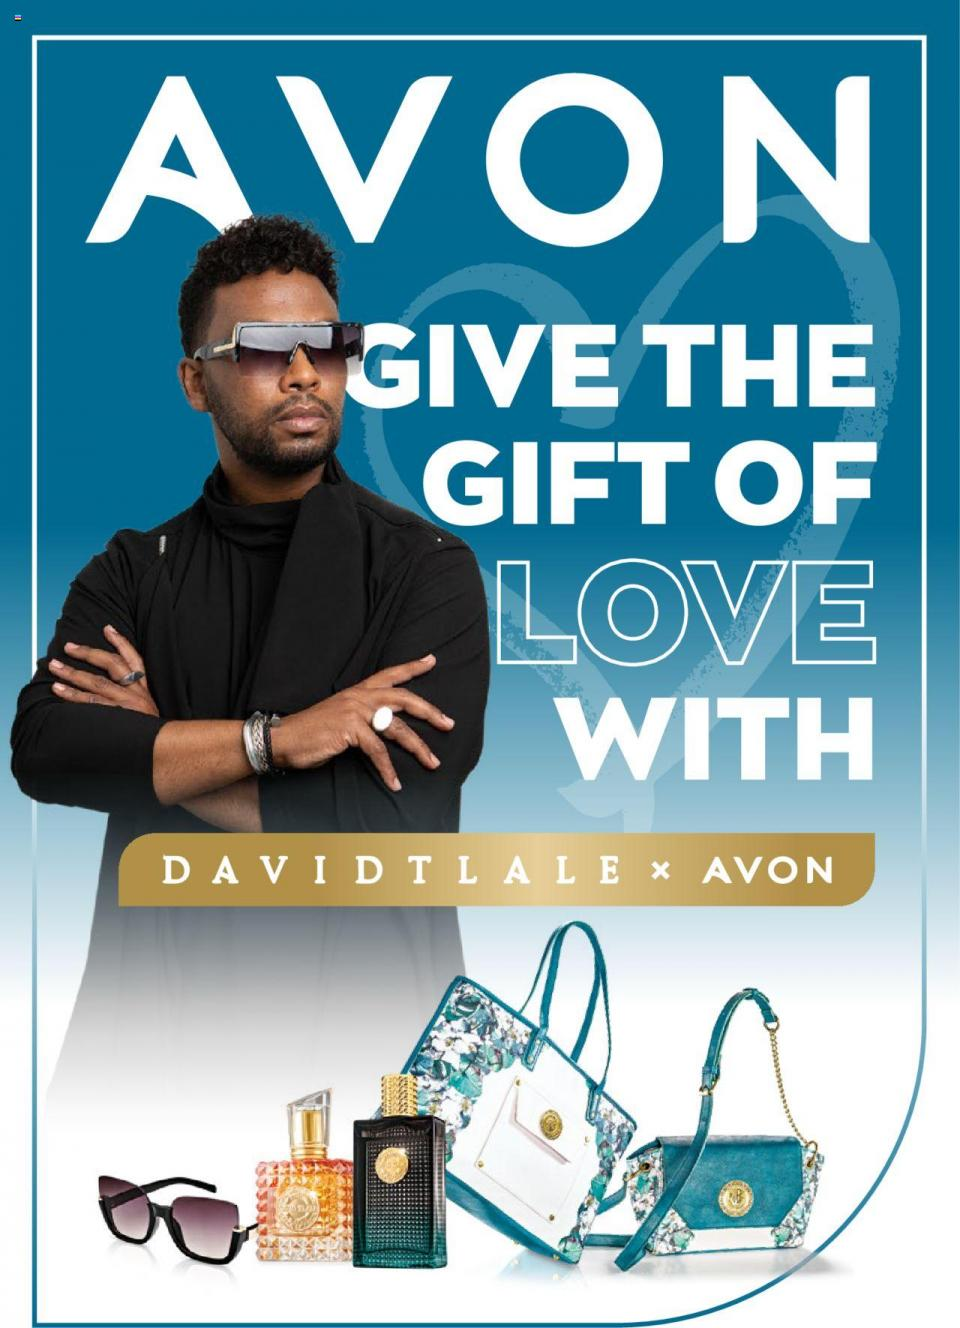 avon brochure david tlale x 9 february 2021